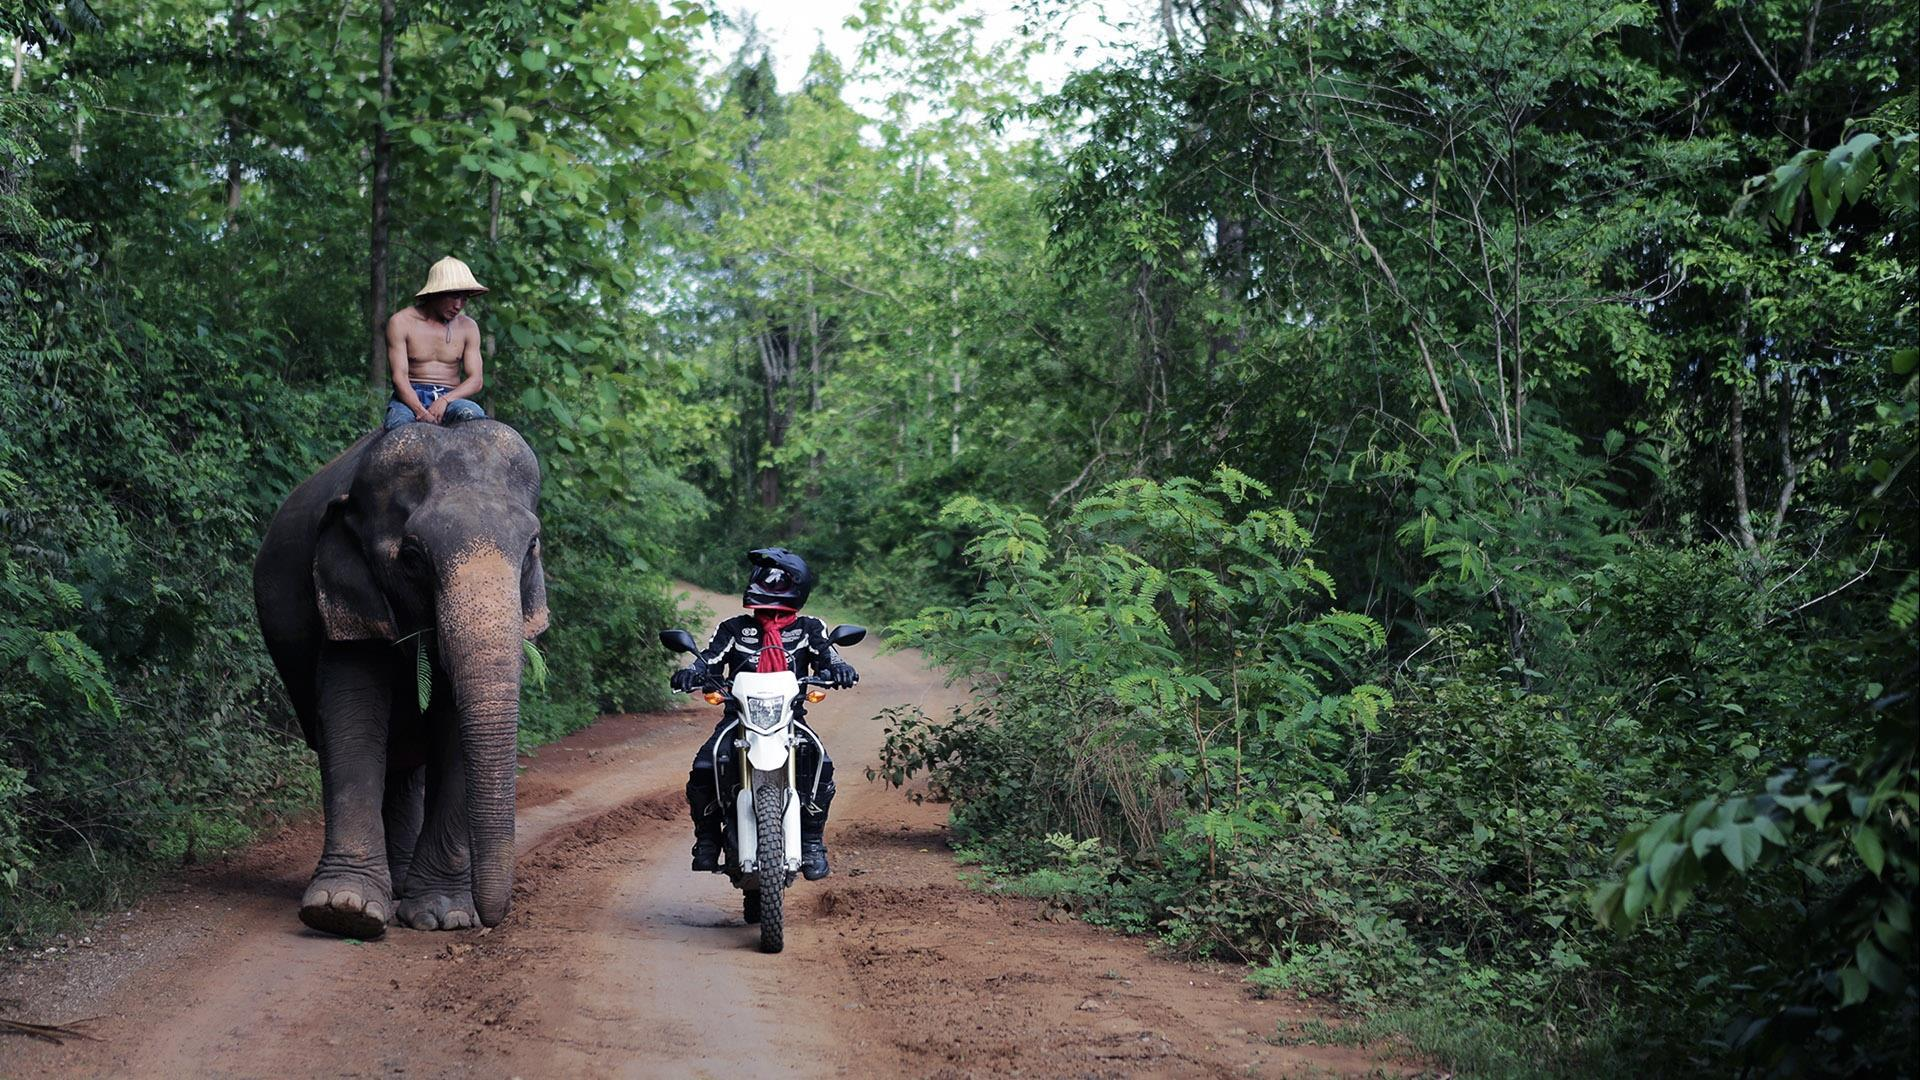 Laos, Luang Prabang: Mekong Elephant Tour - 1 day | A splash of diverse cultures and elephant encounters